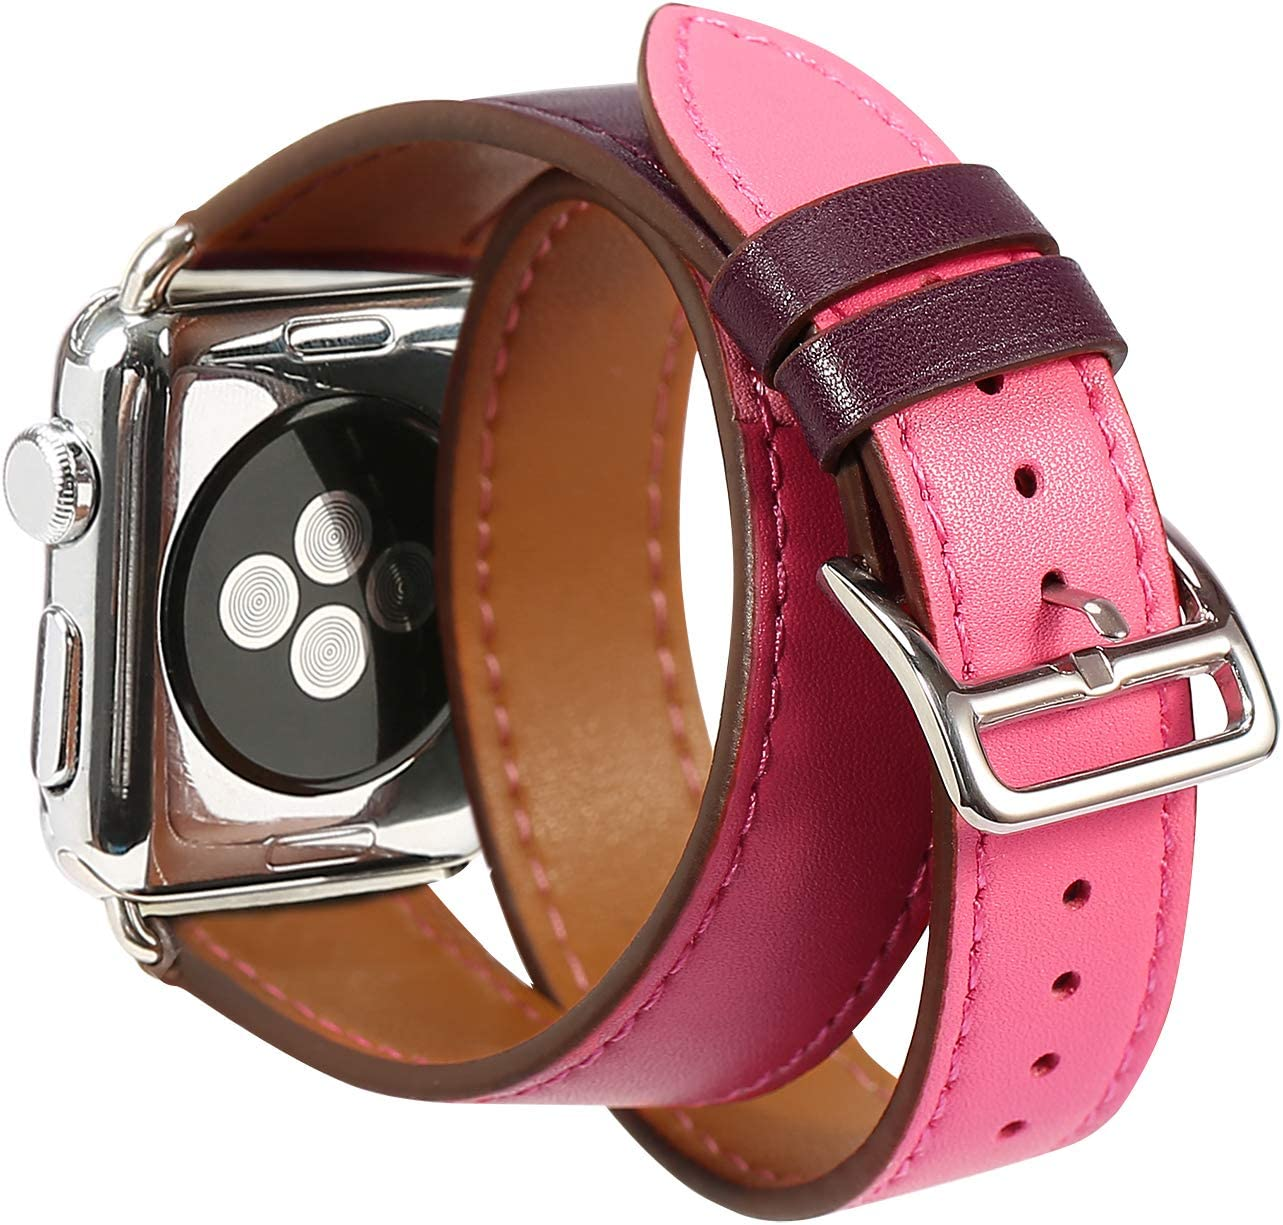 Compatible Apple Watch Band 38mm Genuine Leather Double Tour iwatch Bands Series 1 2 3 for Women Designer Replacement Strap for Apple iPhone Watch - Pink & Purple